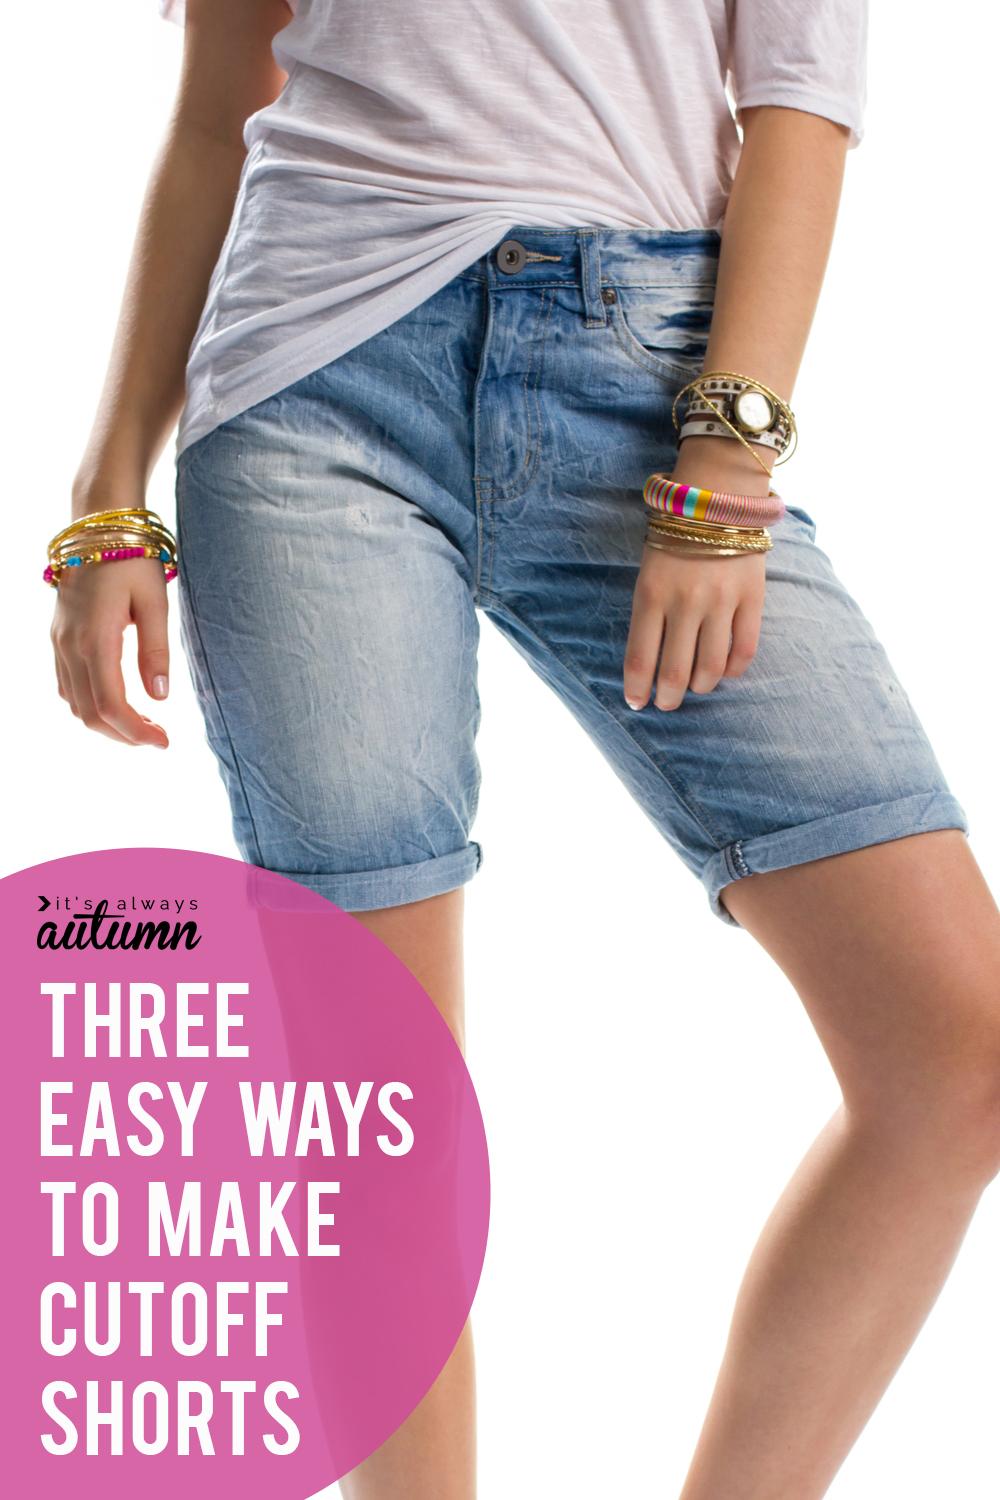 How to make cut off jeans: three easy methods! Cuffed, hemmed, or frayed. Great way to make long shorts for summer!